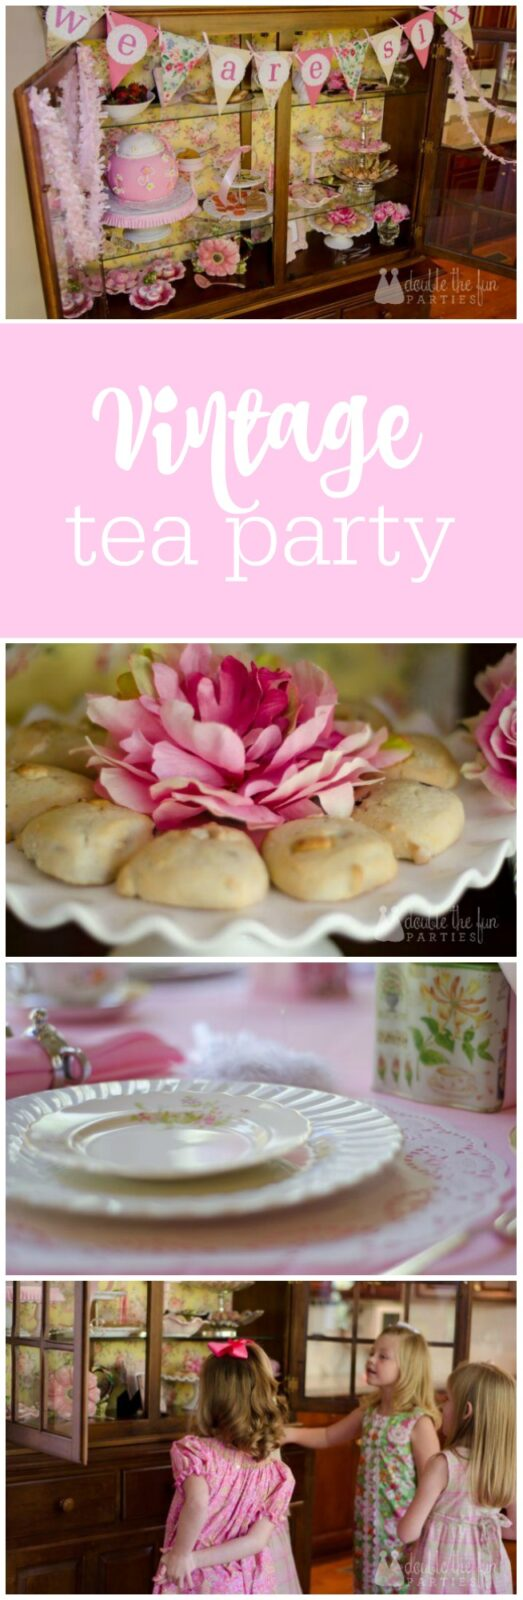 Vintage Tea Party-2 by The Party Teacher